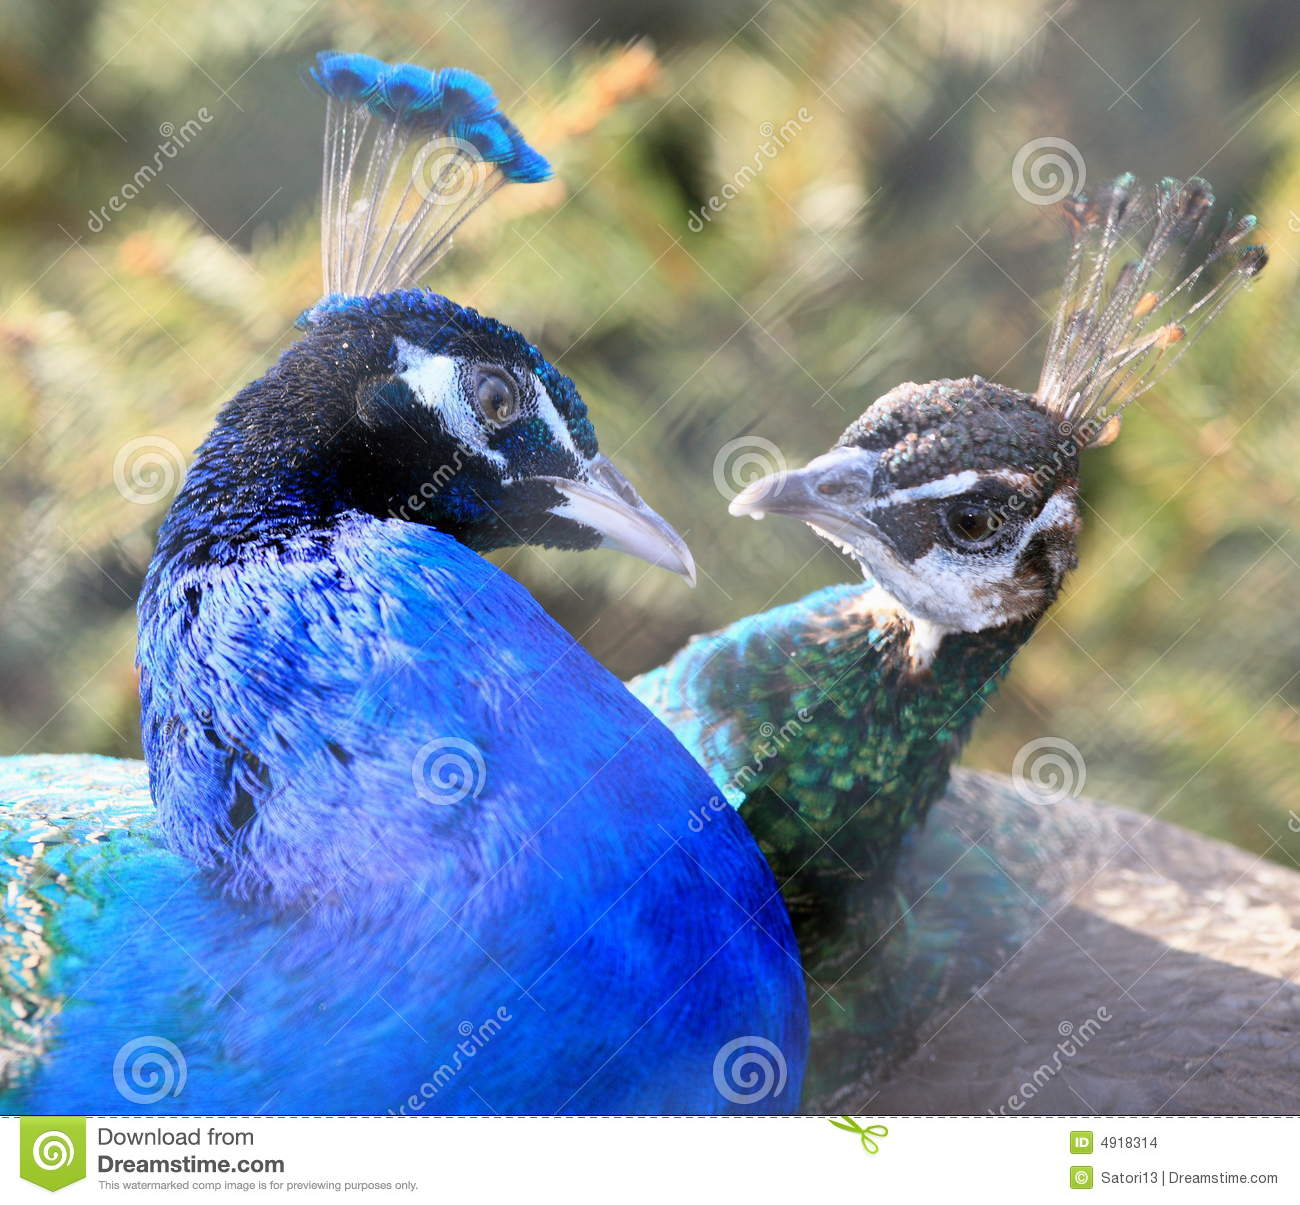 Beautiful Animal Wallpapers Peacocks In Love Stock Photo Image Of Animal Feathers